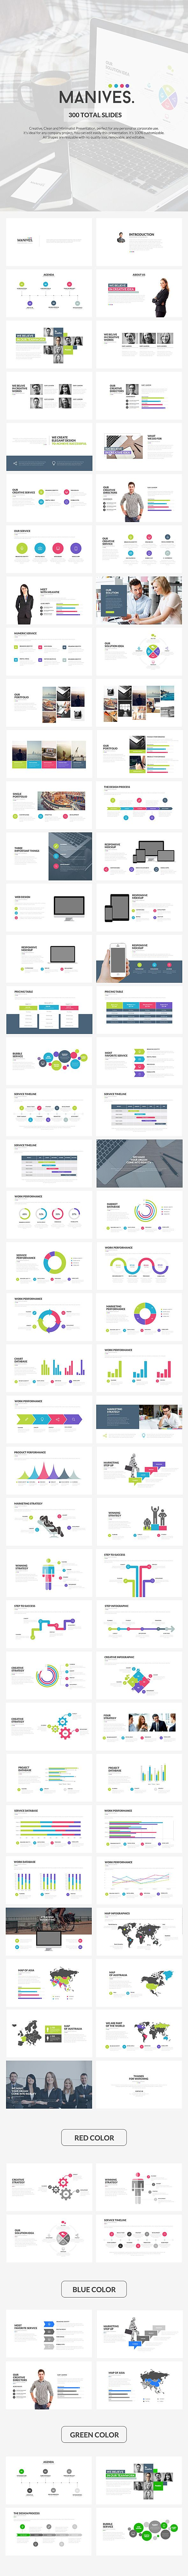 Manives Powerpoint Template #1920x1080 #corporate #infographics • Click here to download ! http://graphicriver.net/item/manives-powerpoint-template/10961294?s_rank=435&ref=pxcr